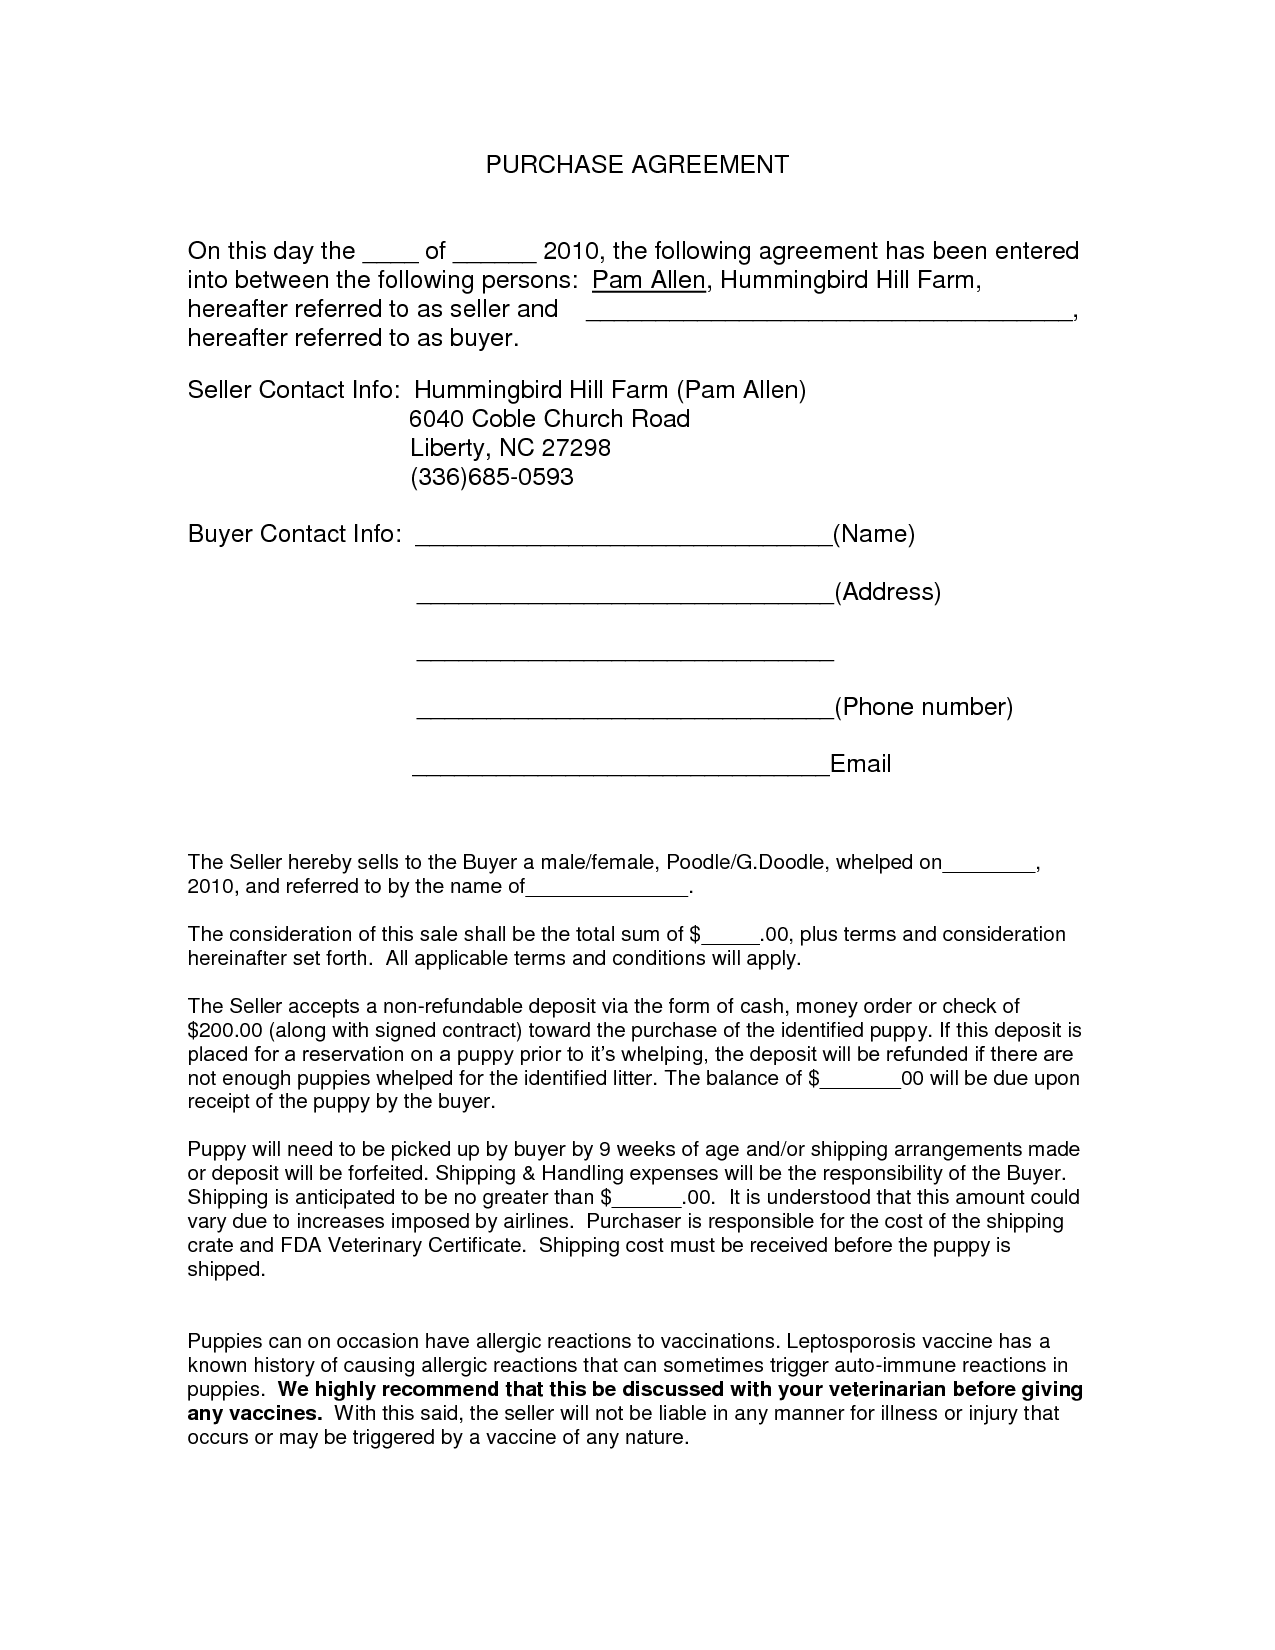 Auto Purchase Agreement Form   DOC By Nyy13910   Purchase Contract Template  Lease To Buy Agreement Template